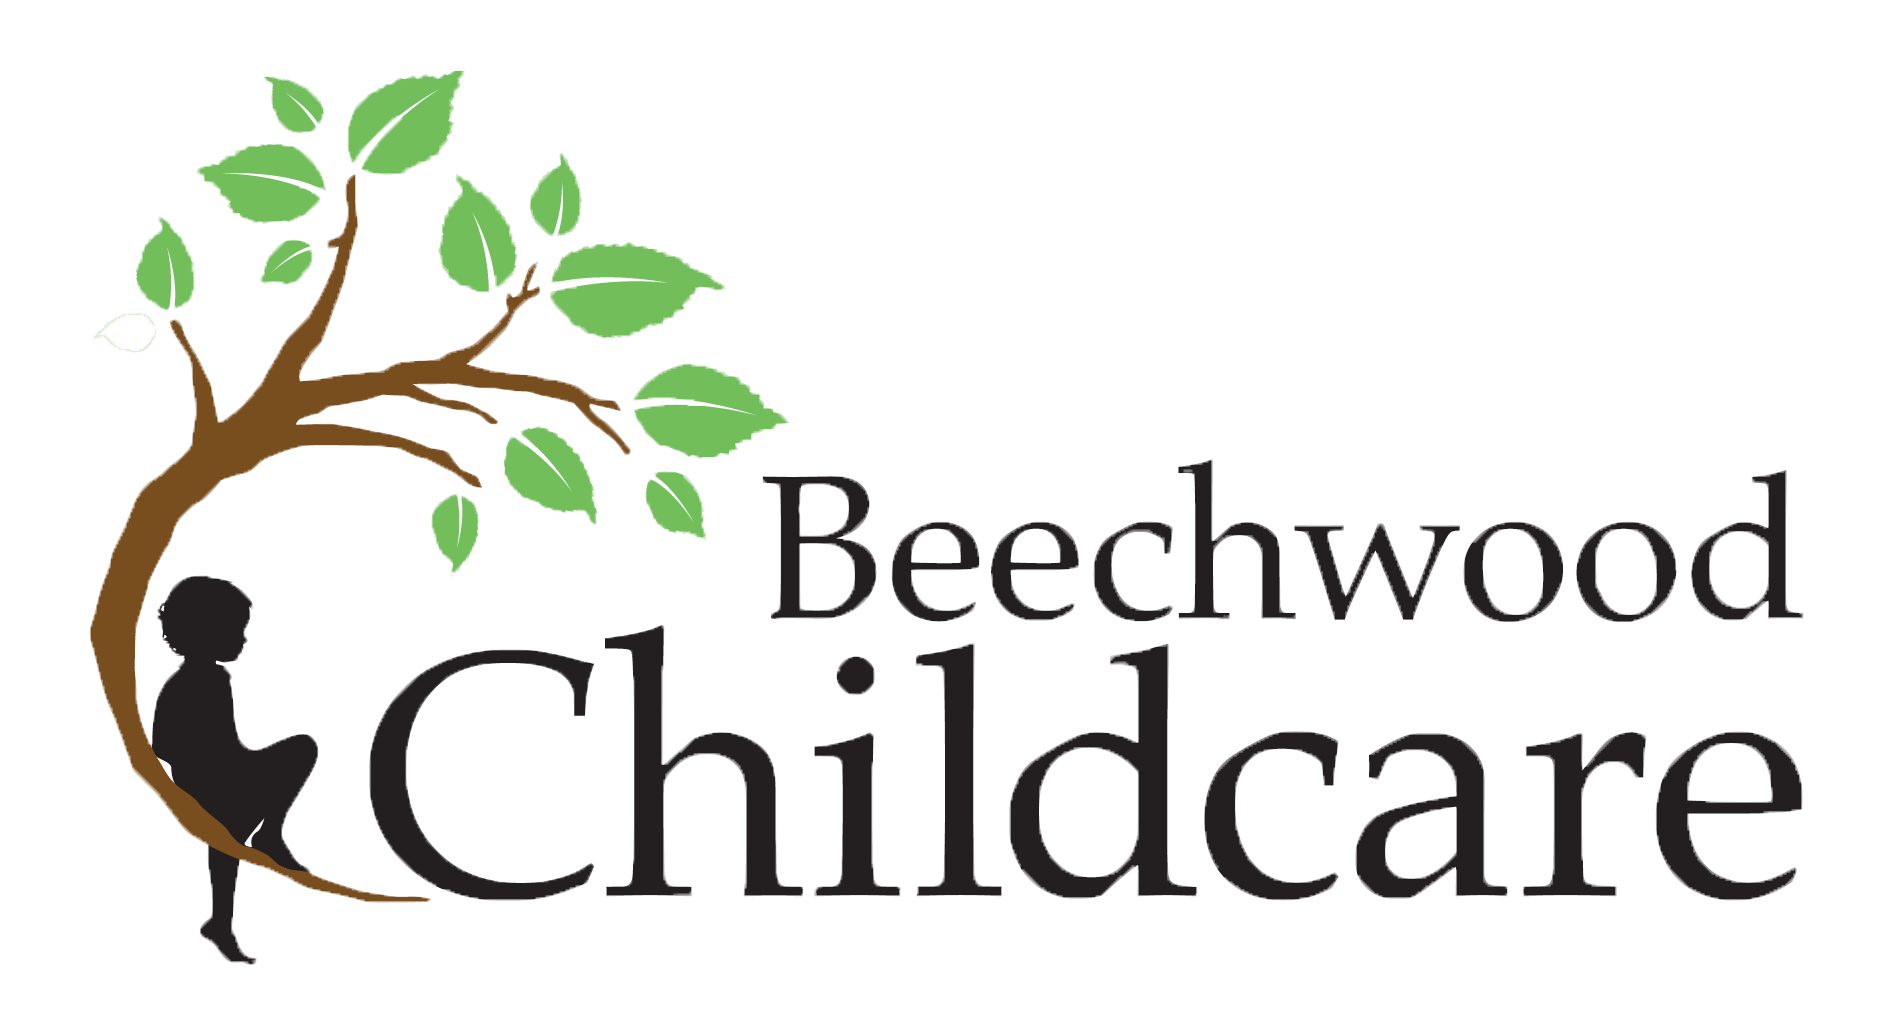 Welcome to Beechwood Childcare | Beechwood Childcare Logo